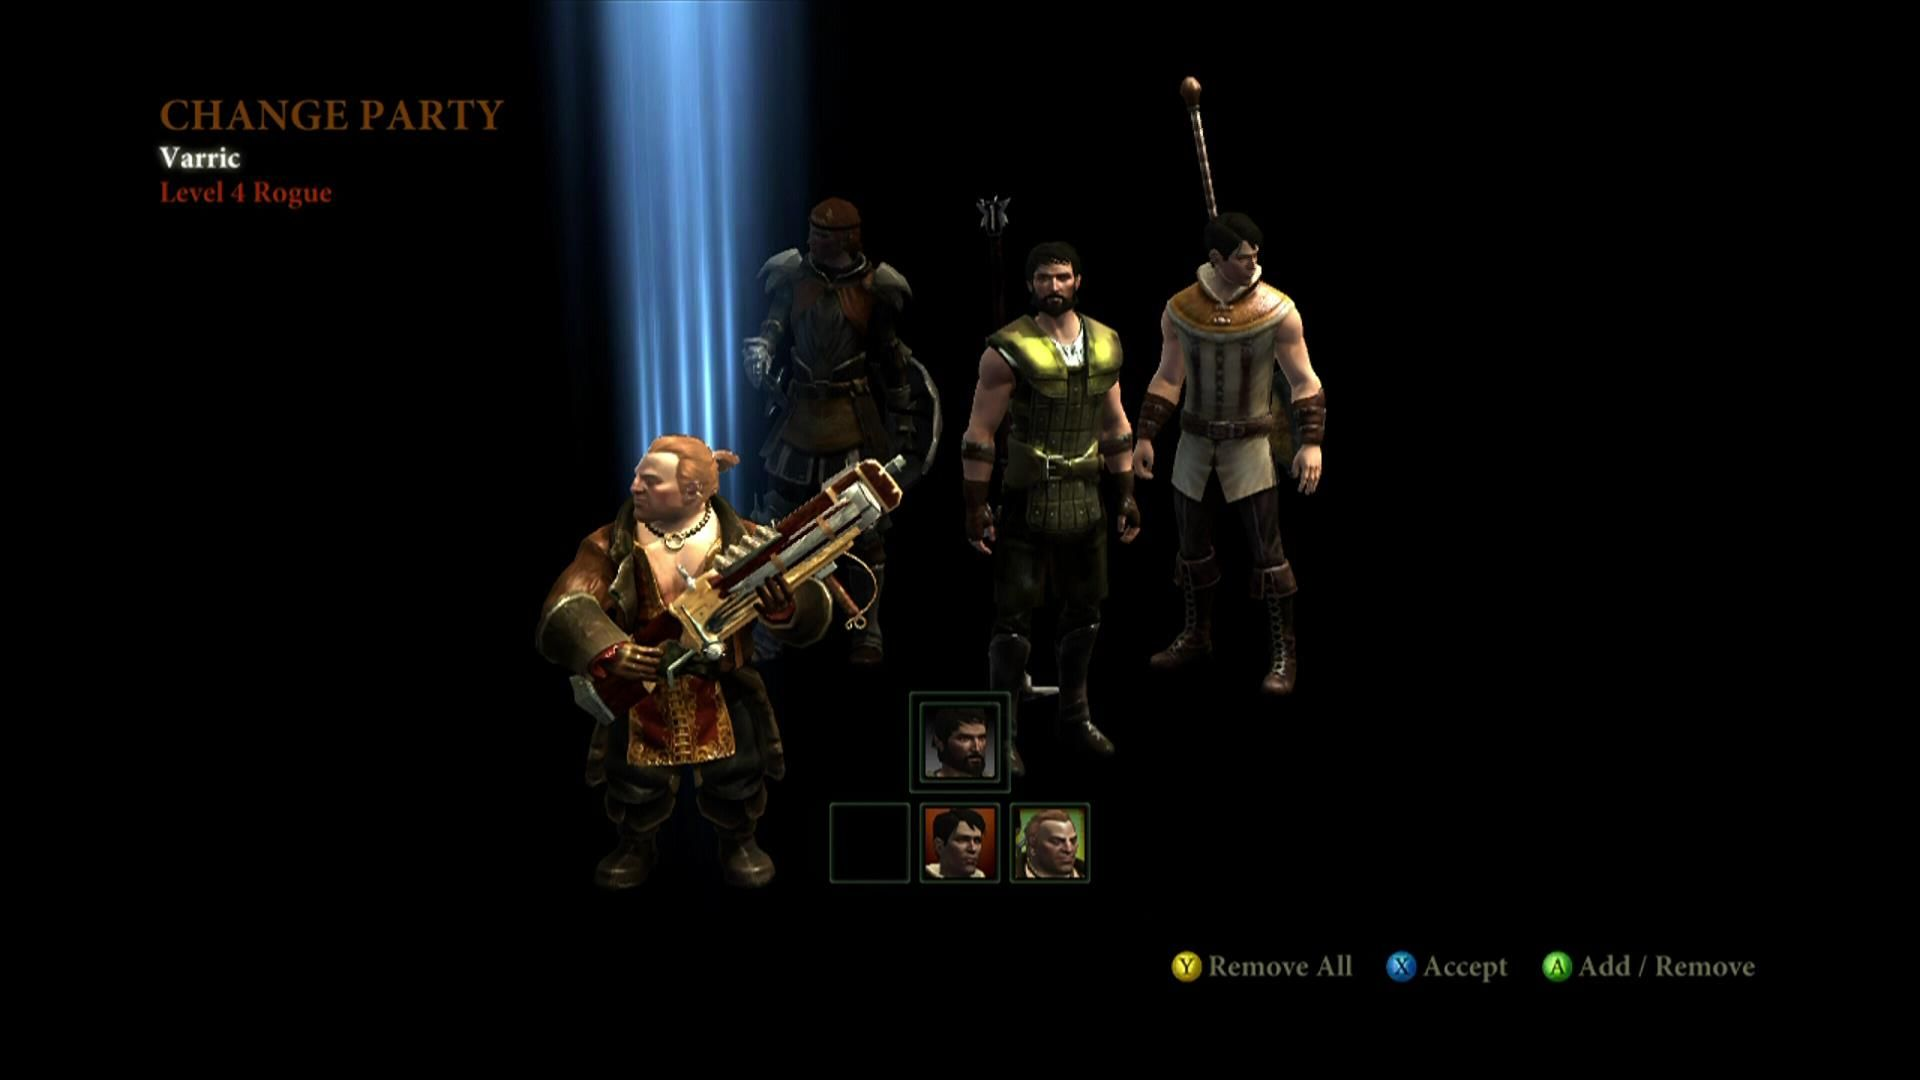 Dragon Age II Xbox 360 Party selection screen